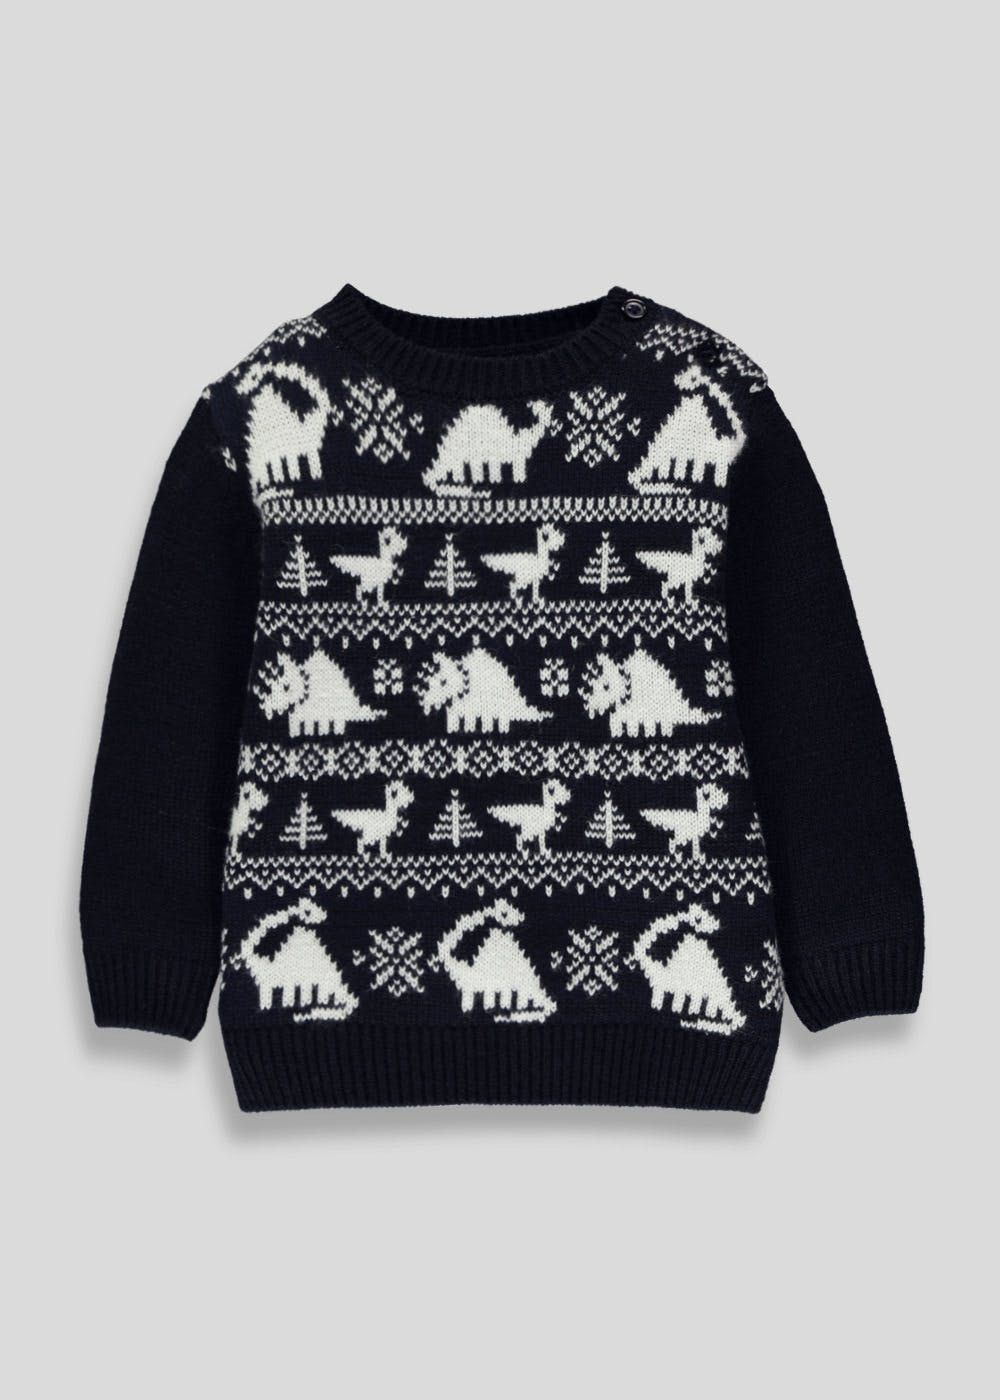 19bb40ece464 Kids Dinosaur Christmas Jumper (3mths-5yrs)